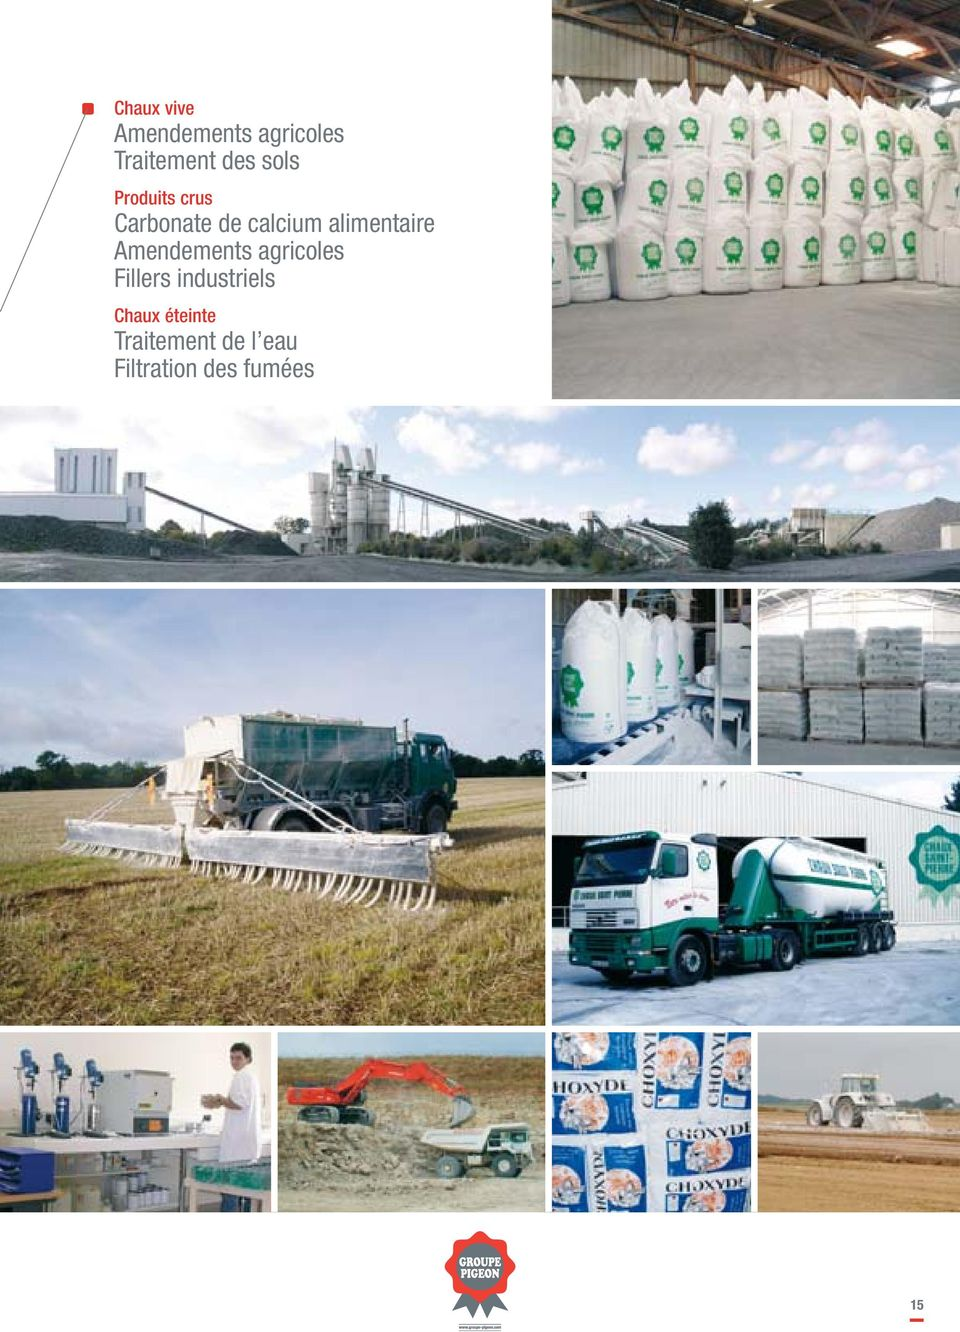 alimentaire Amendements agricoles Fillers